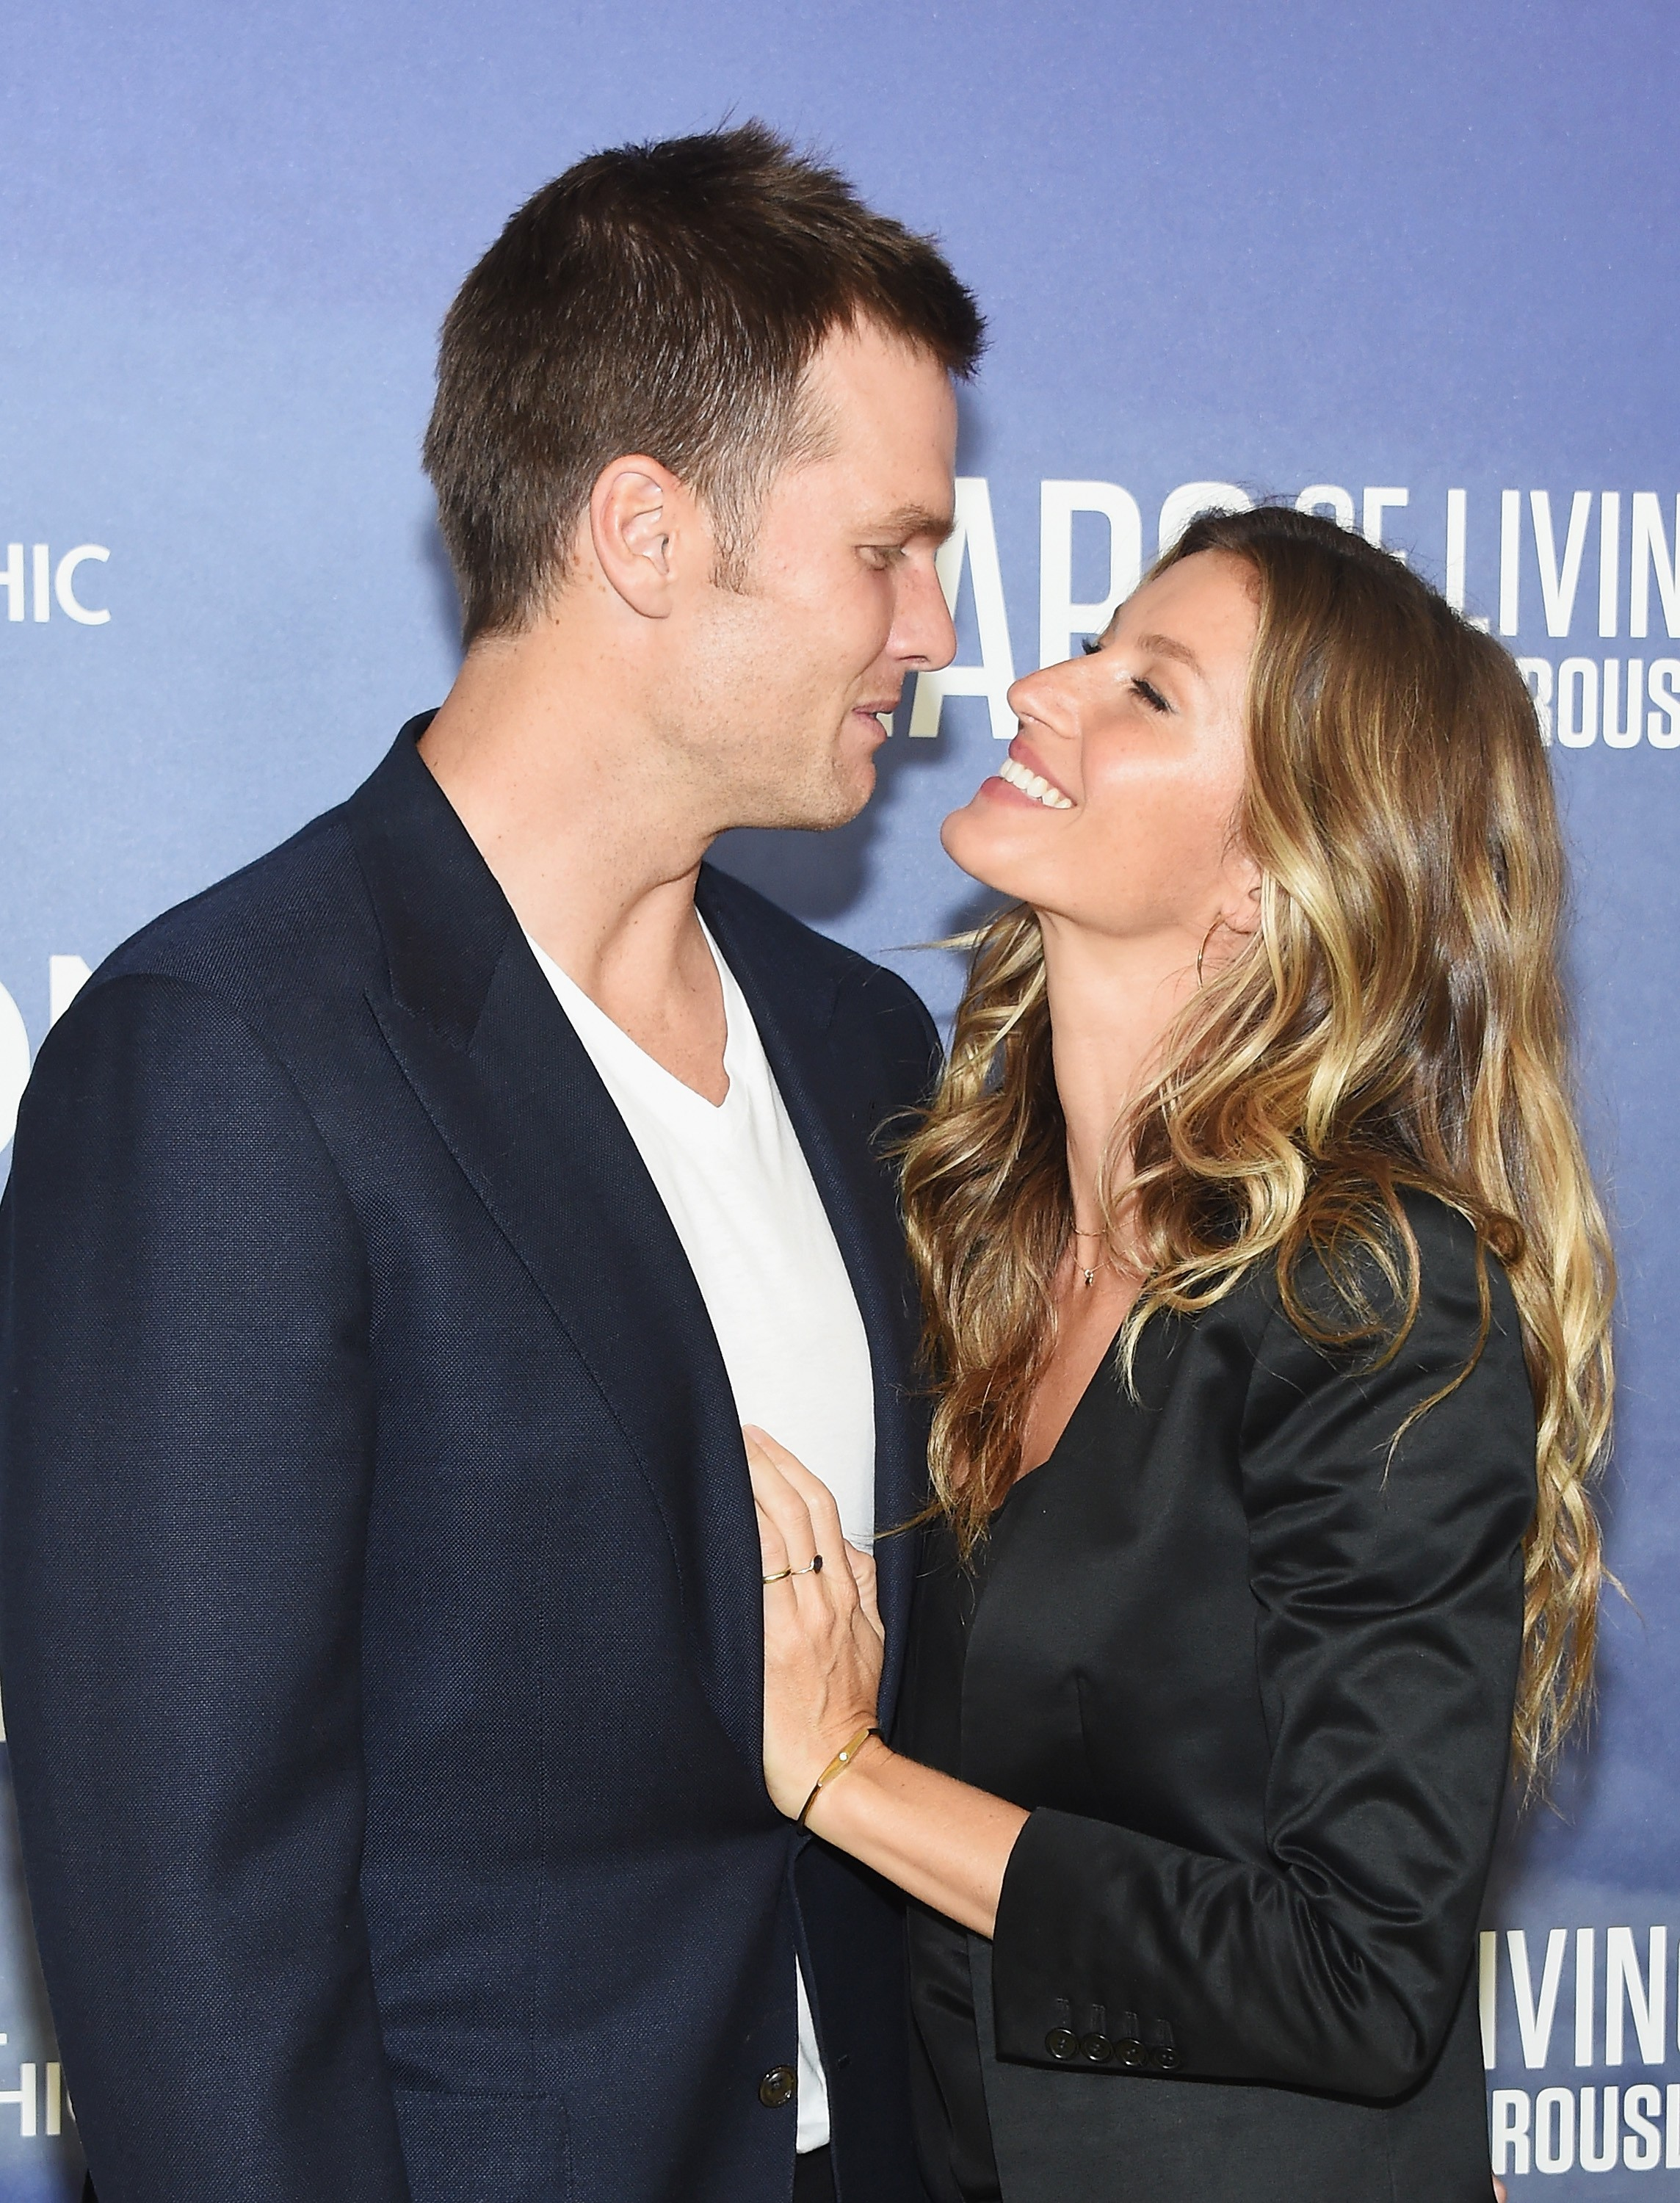 Tom Brady e Gisele Bündchen em evento nos EUA (Foto: Getty Images)